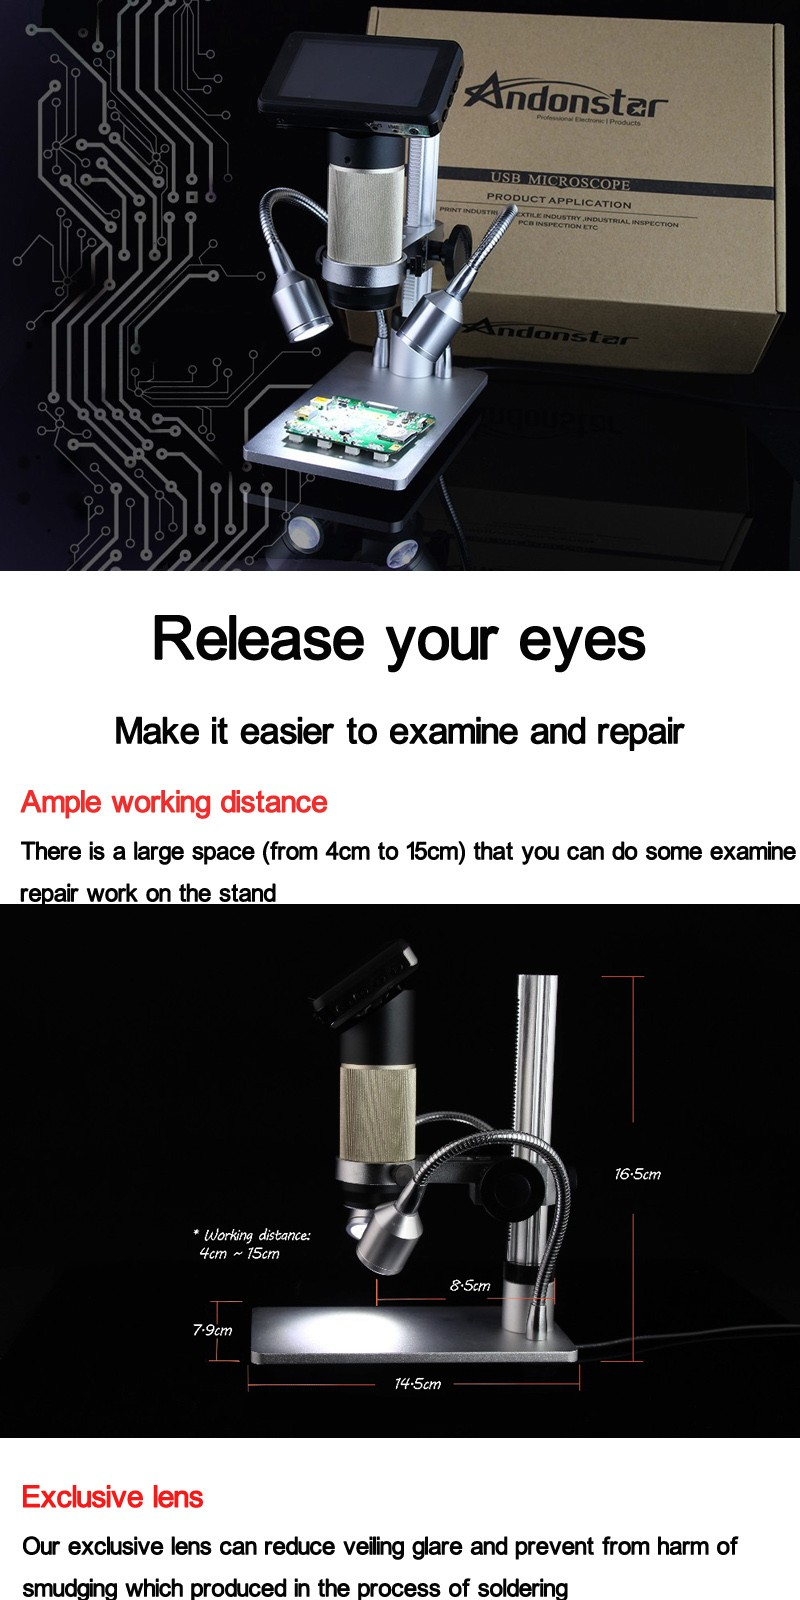 Andonstar ADSM201 1080P Full HD USB Microscope Magnifier Long Object Distance Microscope Double Output Soldering Tool Phone Watch Repair